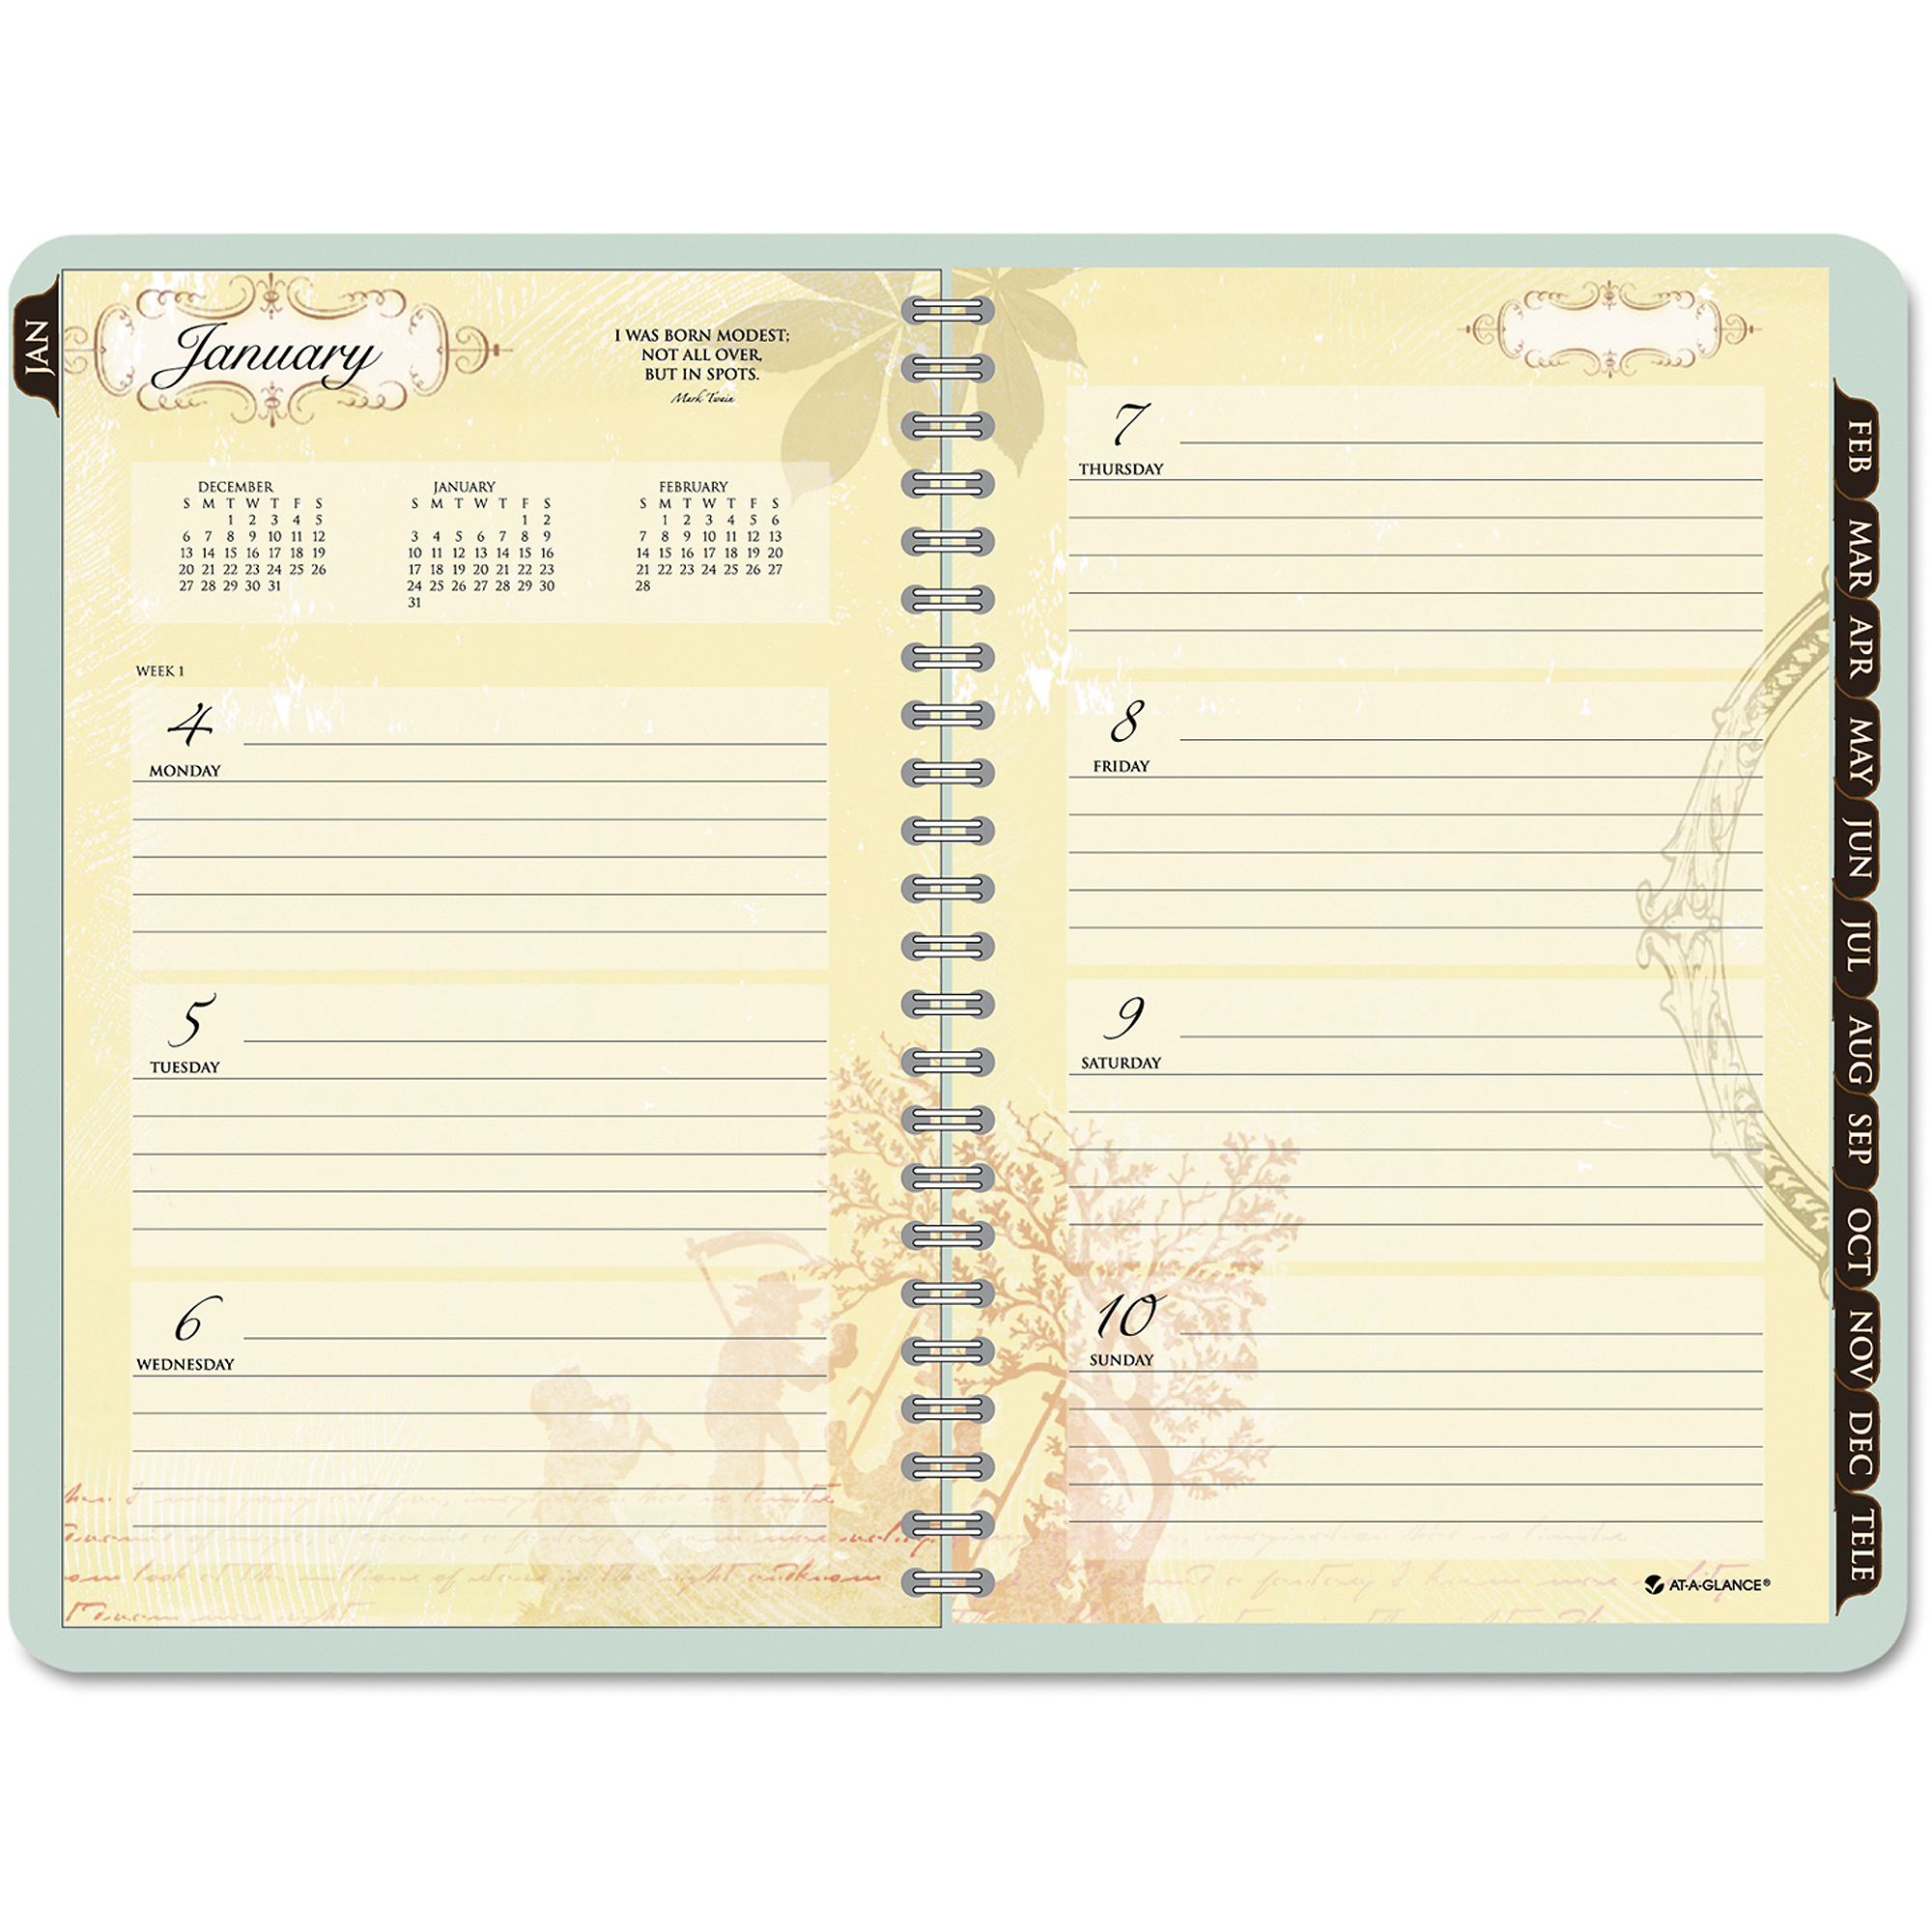 AT-A-GLANCE Poetical Weekly/Monthly Planner, 5 1/2 x 8 1/2, Green, 2017-2018